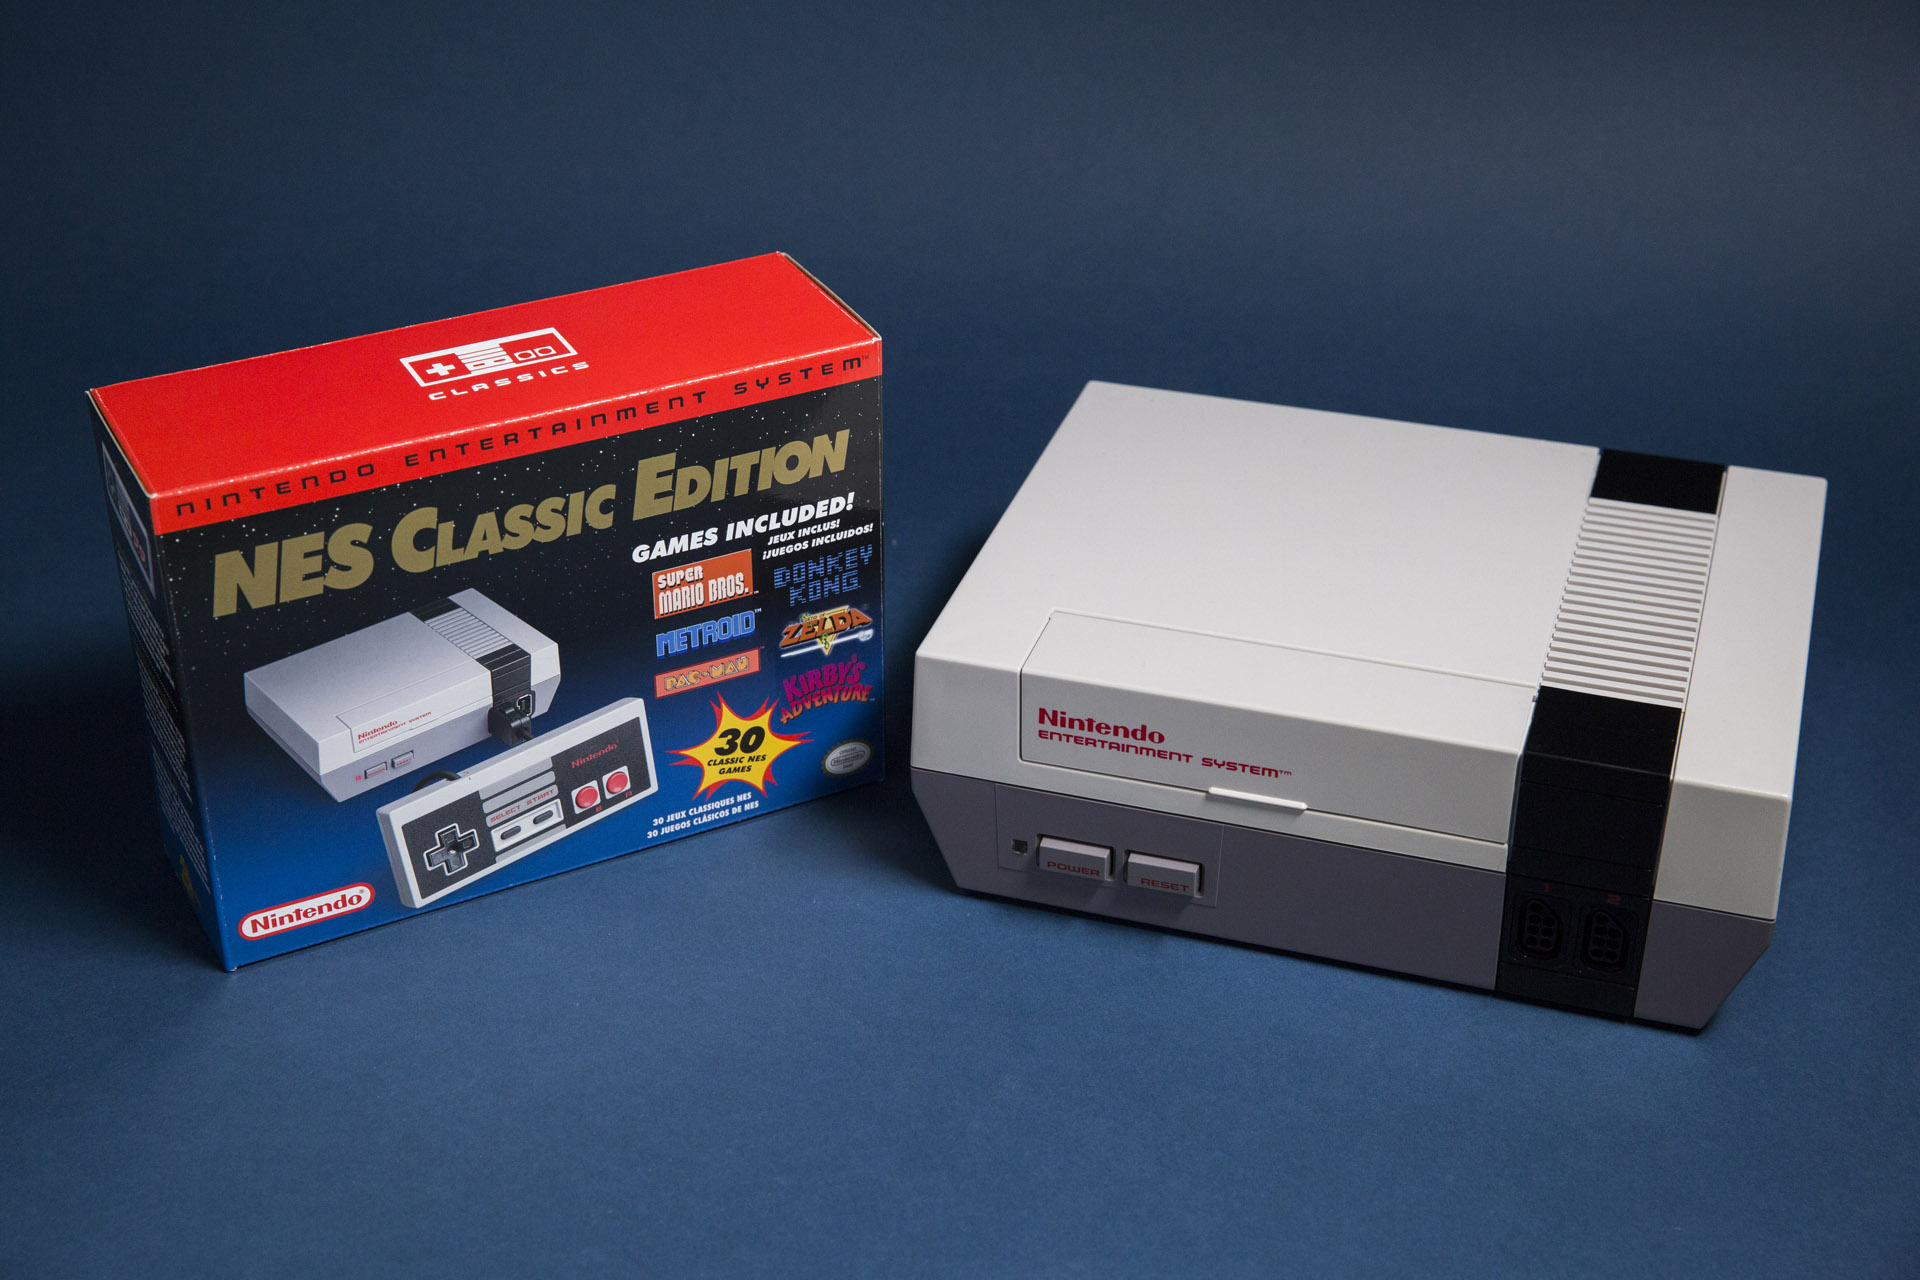 NES Classic Edition has been discontinued (update)